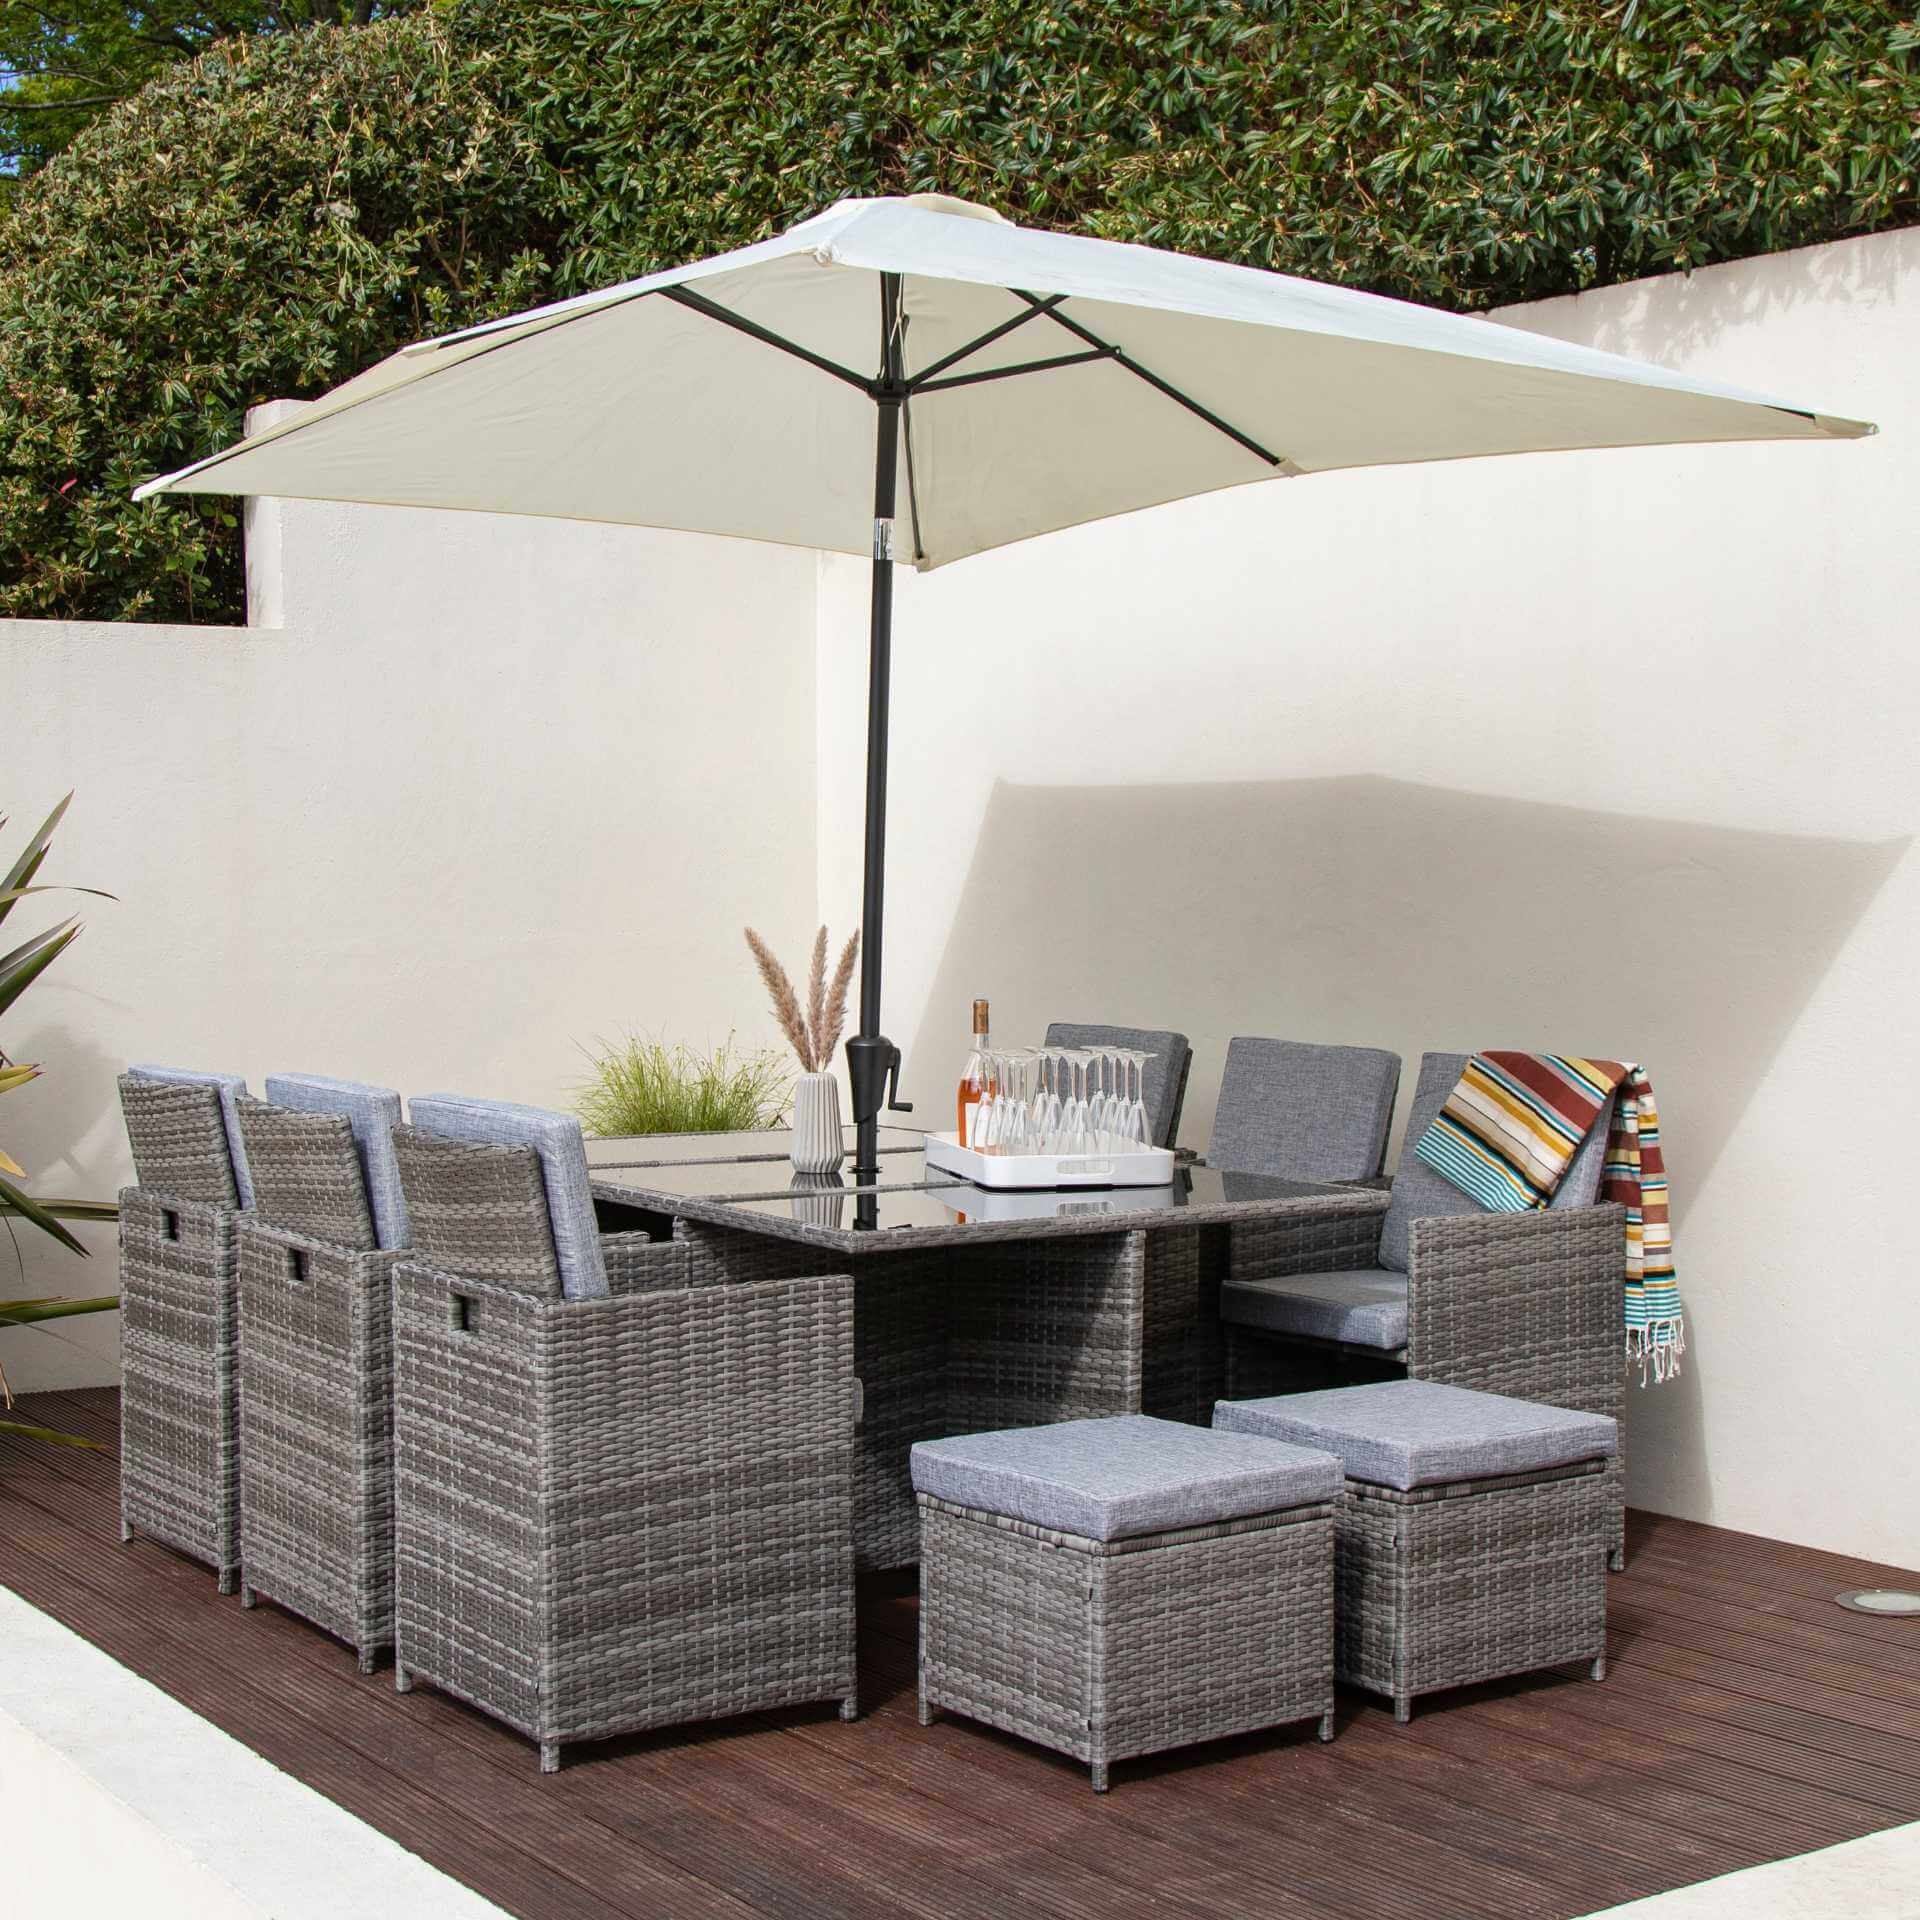 10 Seater Rattan Cube Outdoor Dining Set With Parasol Grey Laura James